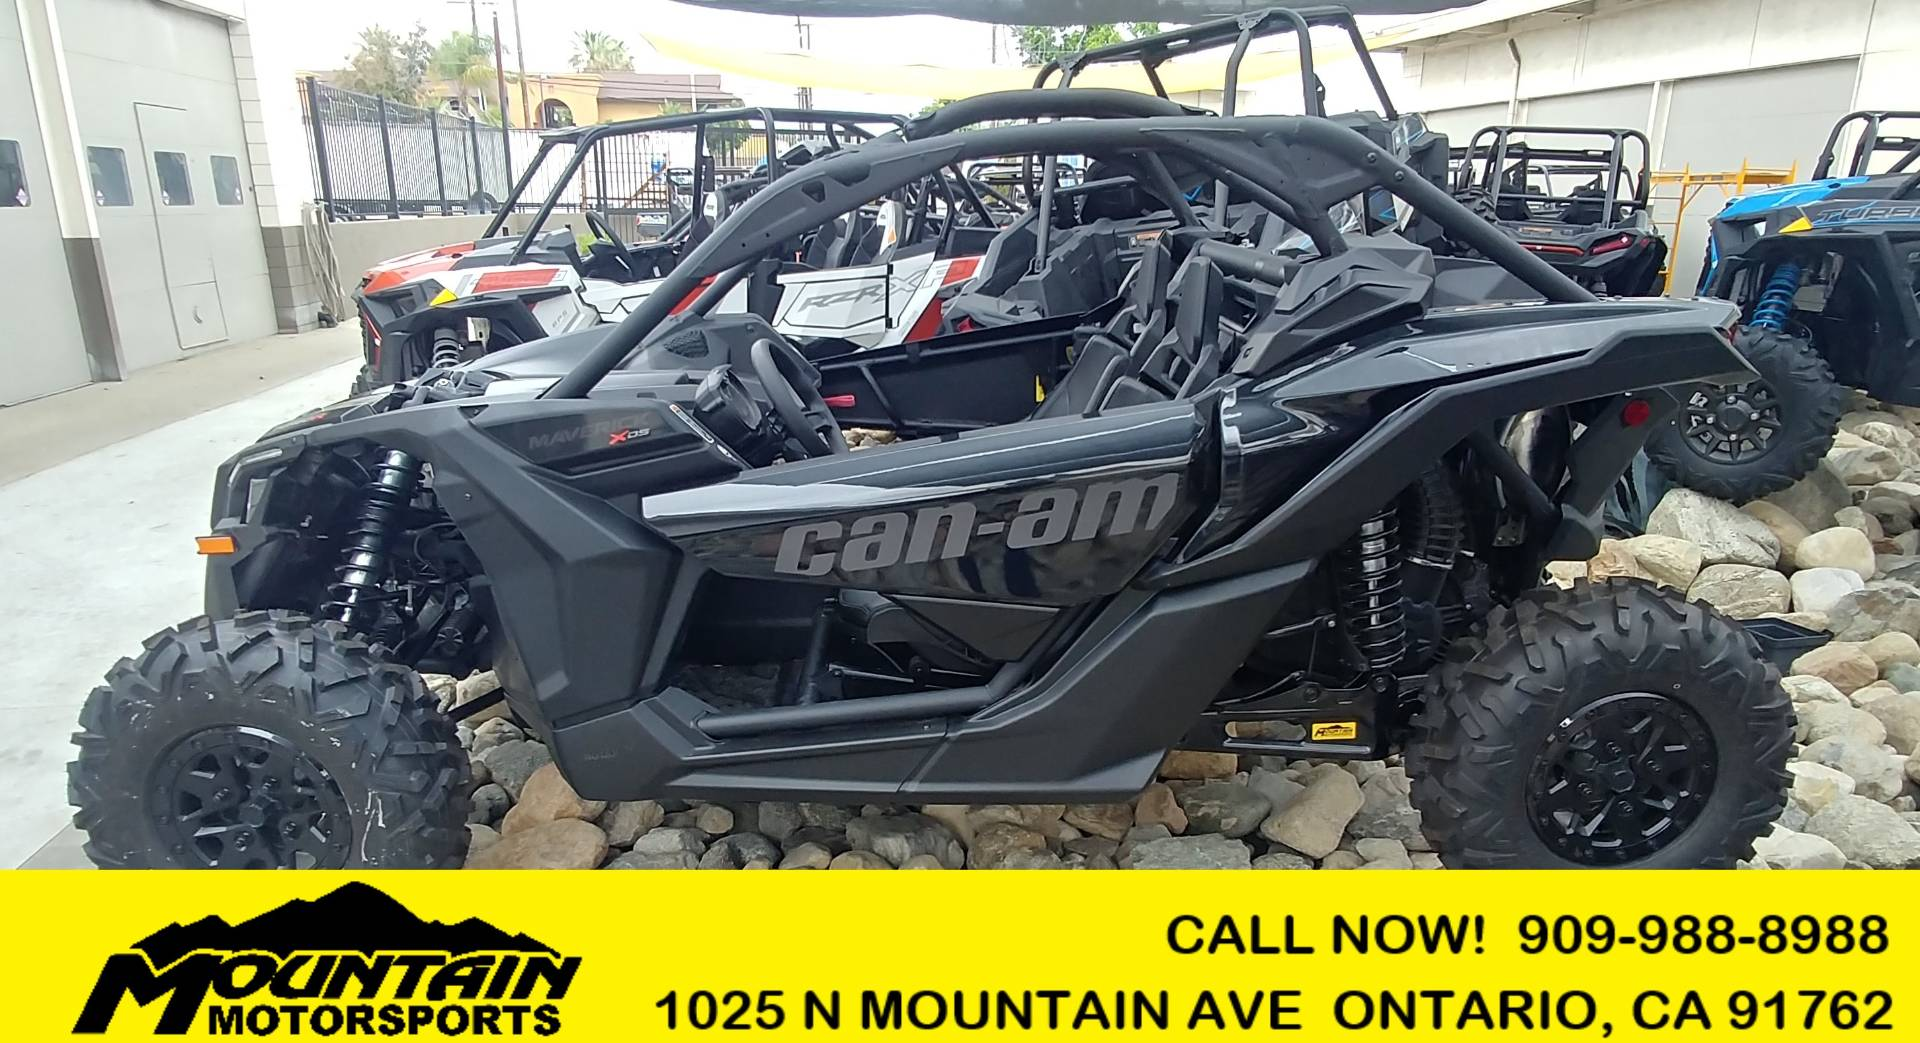 2019 Can-Am Maverick X3 X ds Turbo R for sale 15377